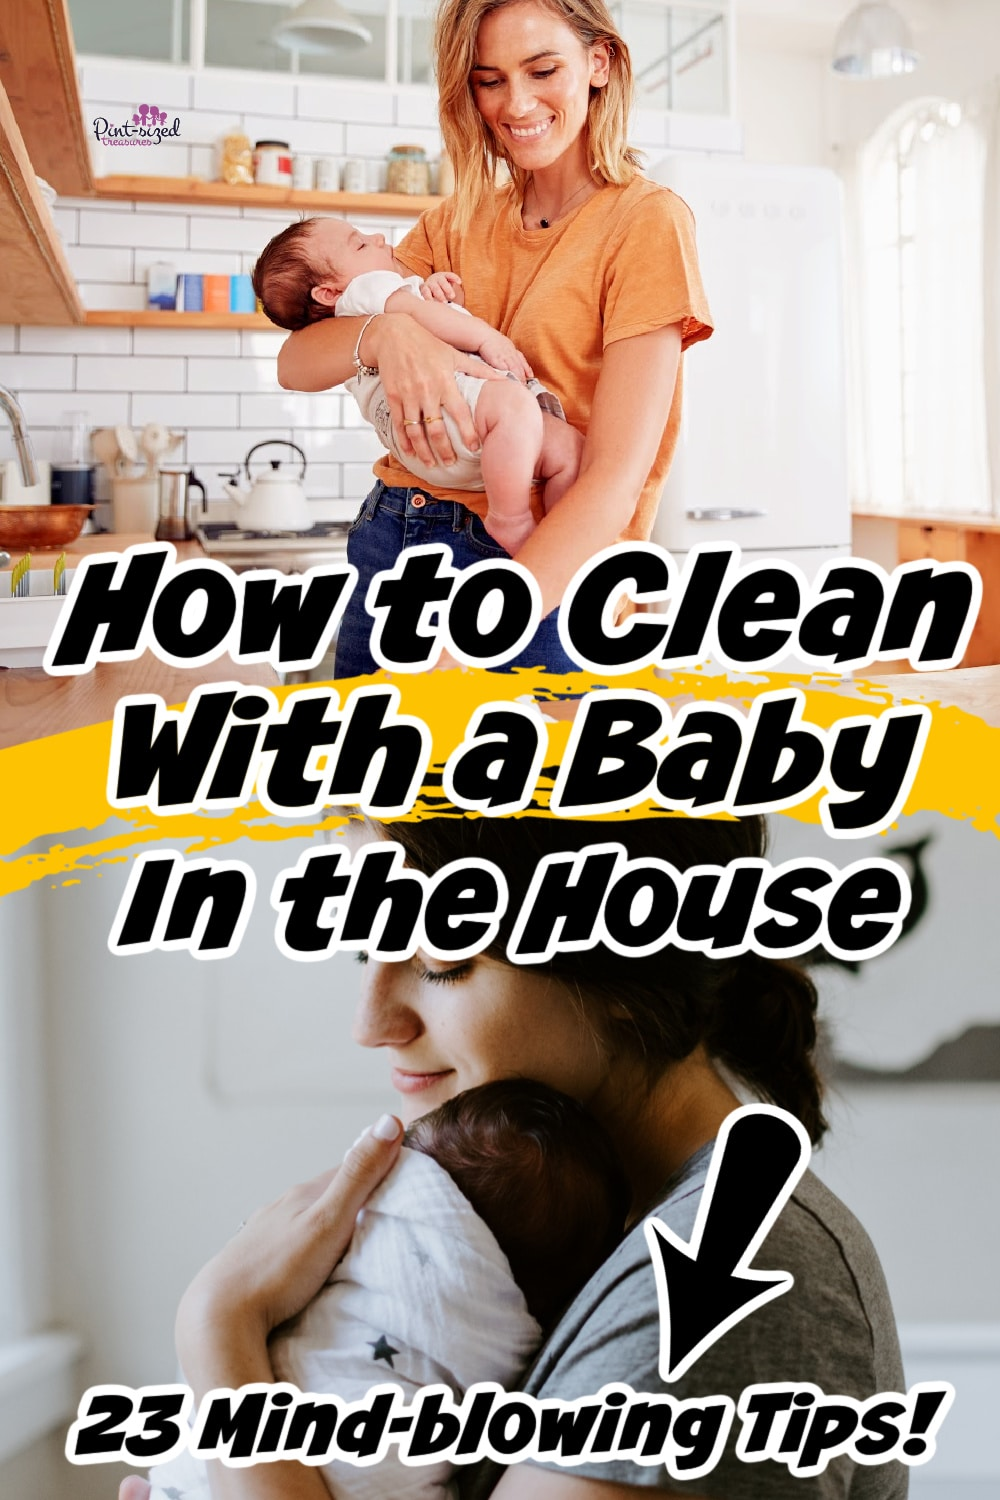 moms holding babies as they clean the house